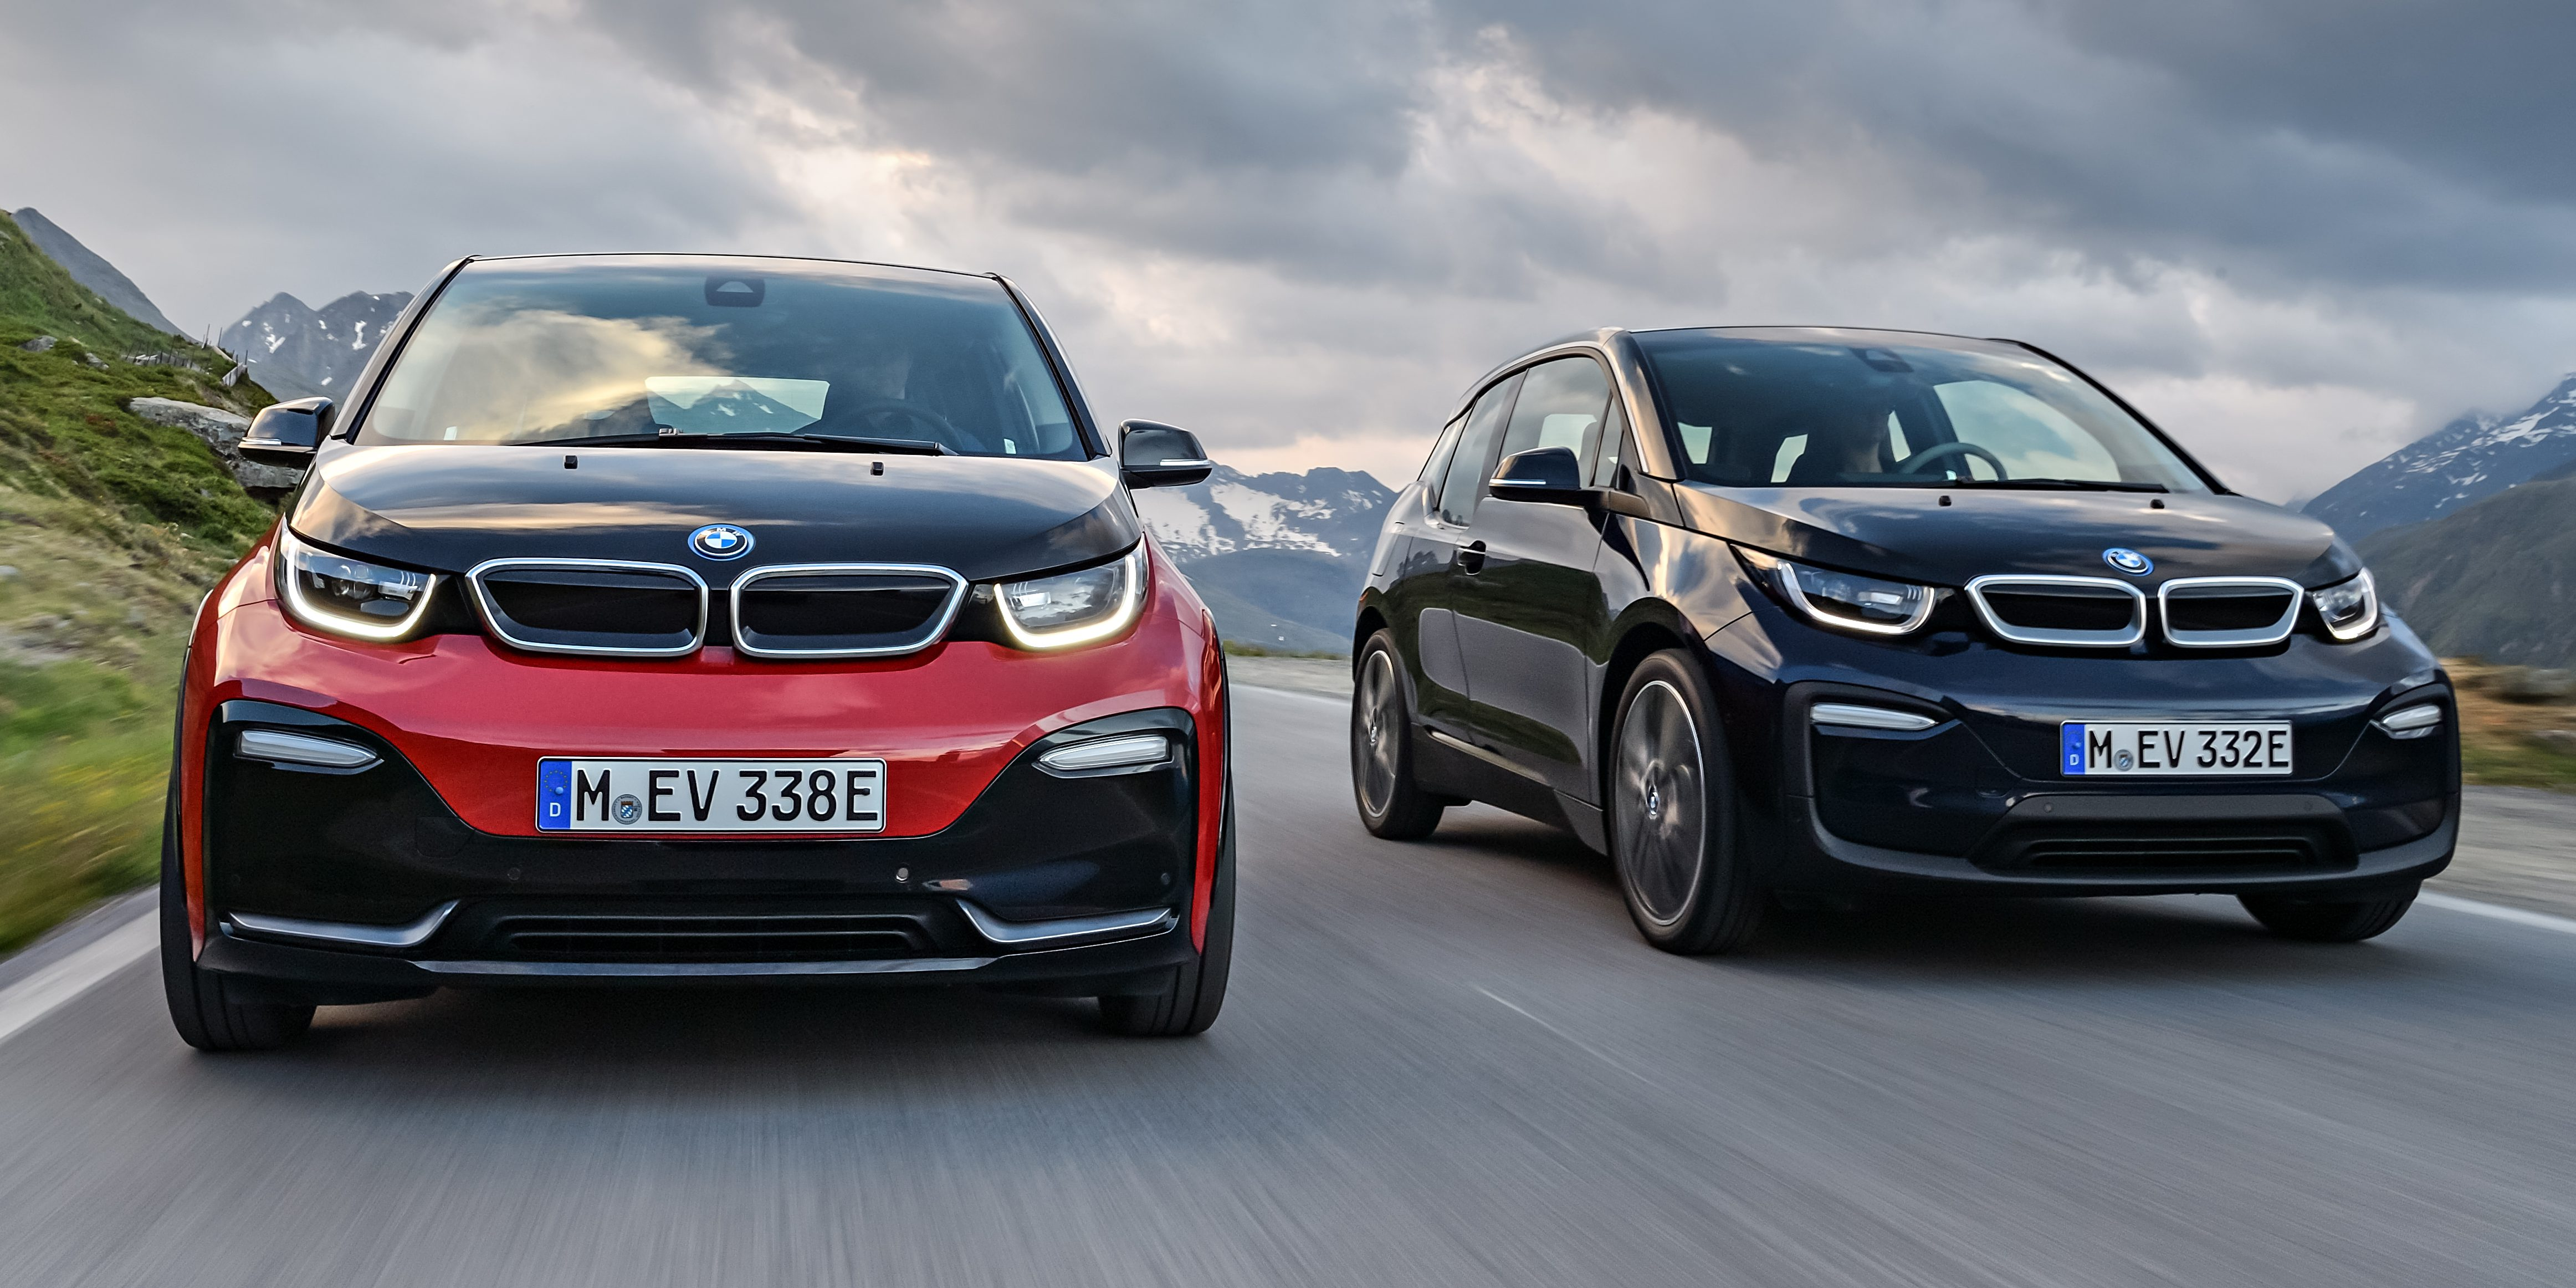 Attractive BMW Is Considering Killing The I3 And I8 Programs Ahead Of New Generation  Of EVs